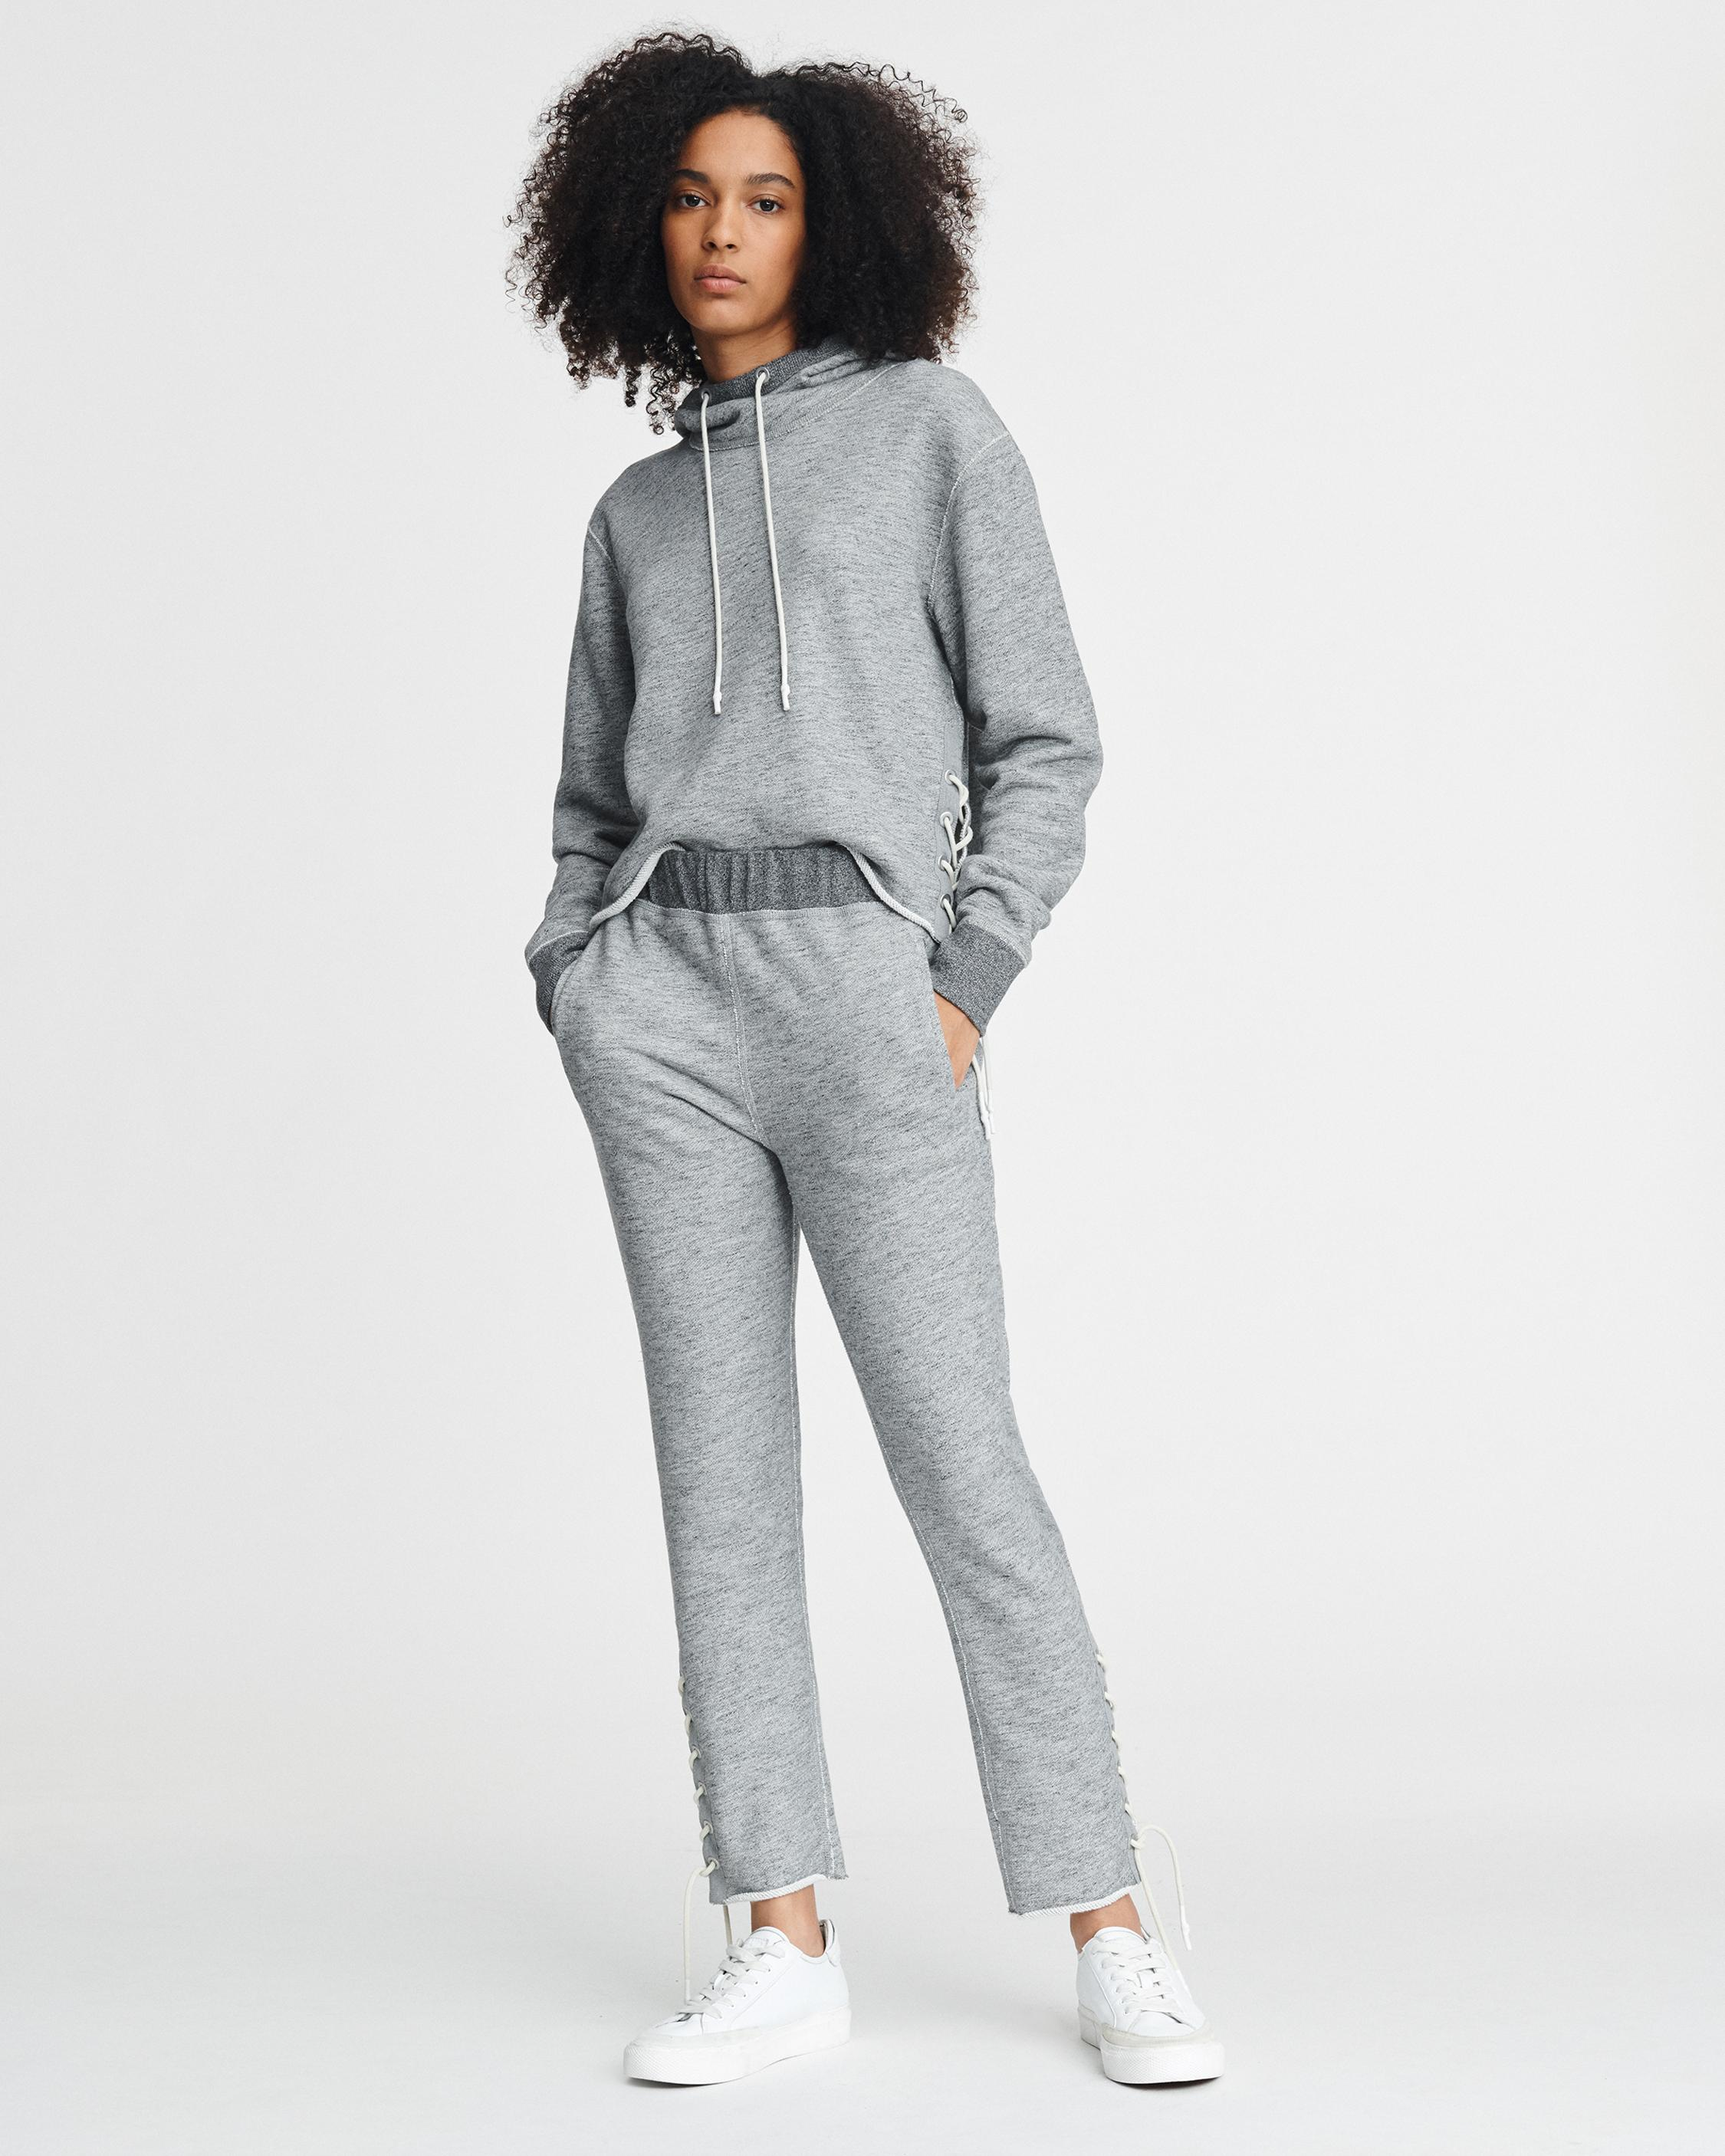 AMELIA LACE UP SWEATPANT